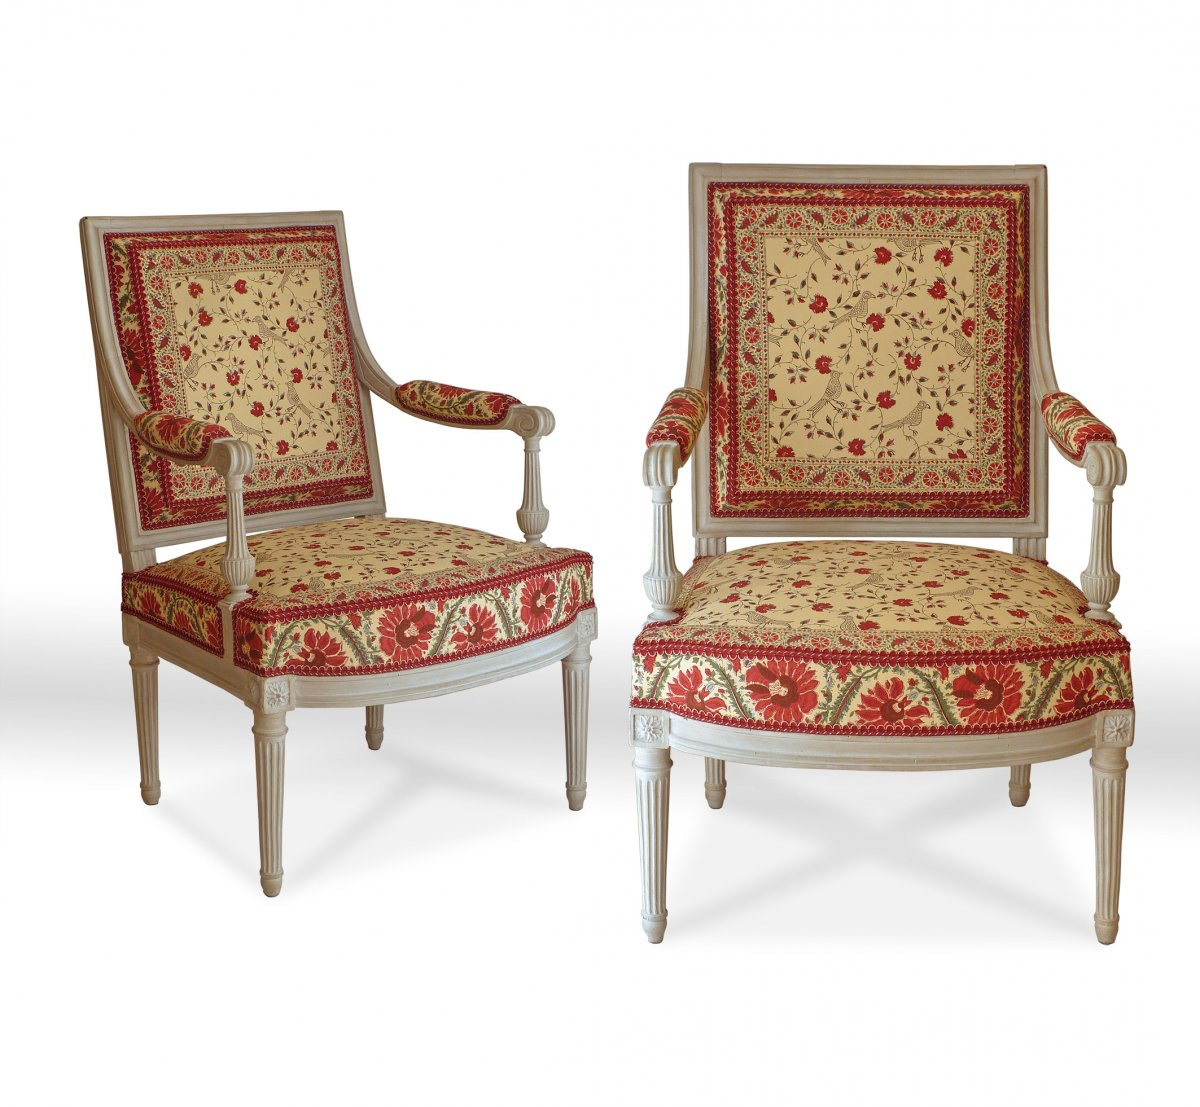 A Pair Of Large Louis Xvi Fauteuils à La Reine Ref 60375